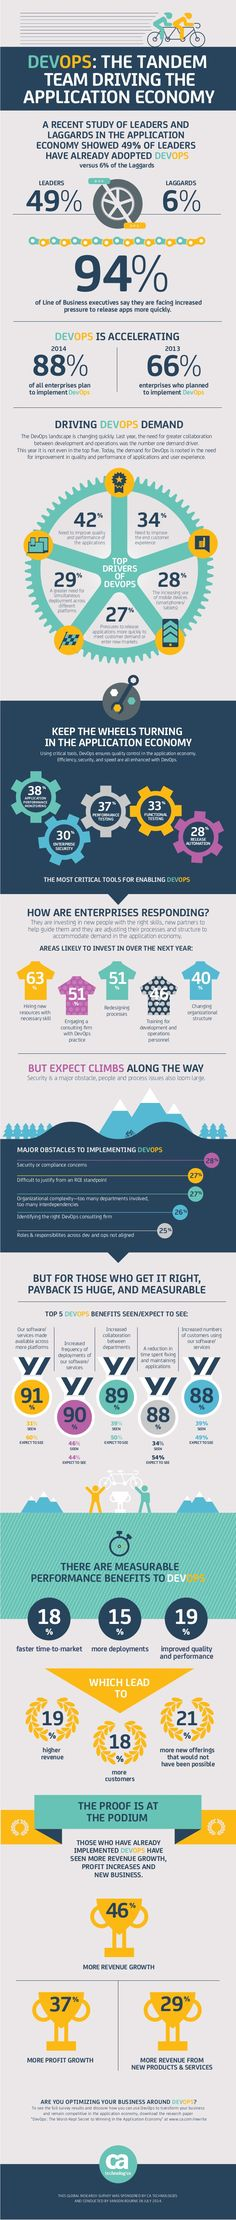 DevOps obstacles and benefits